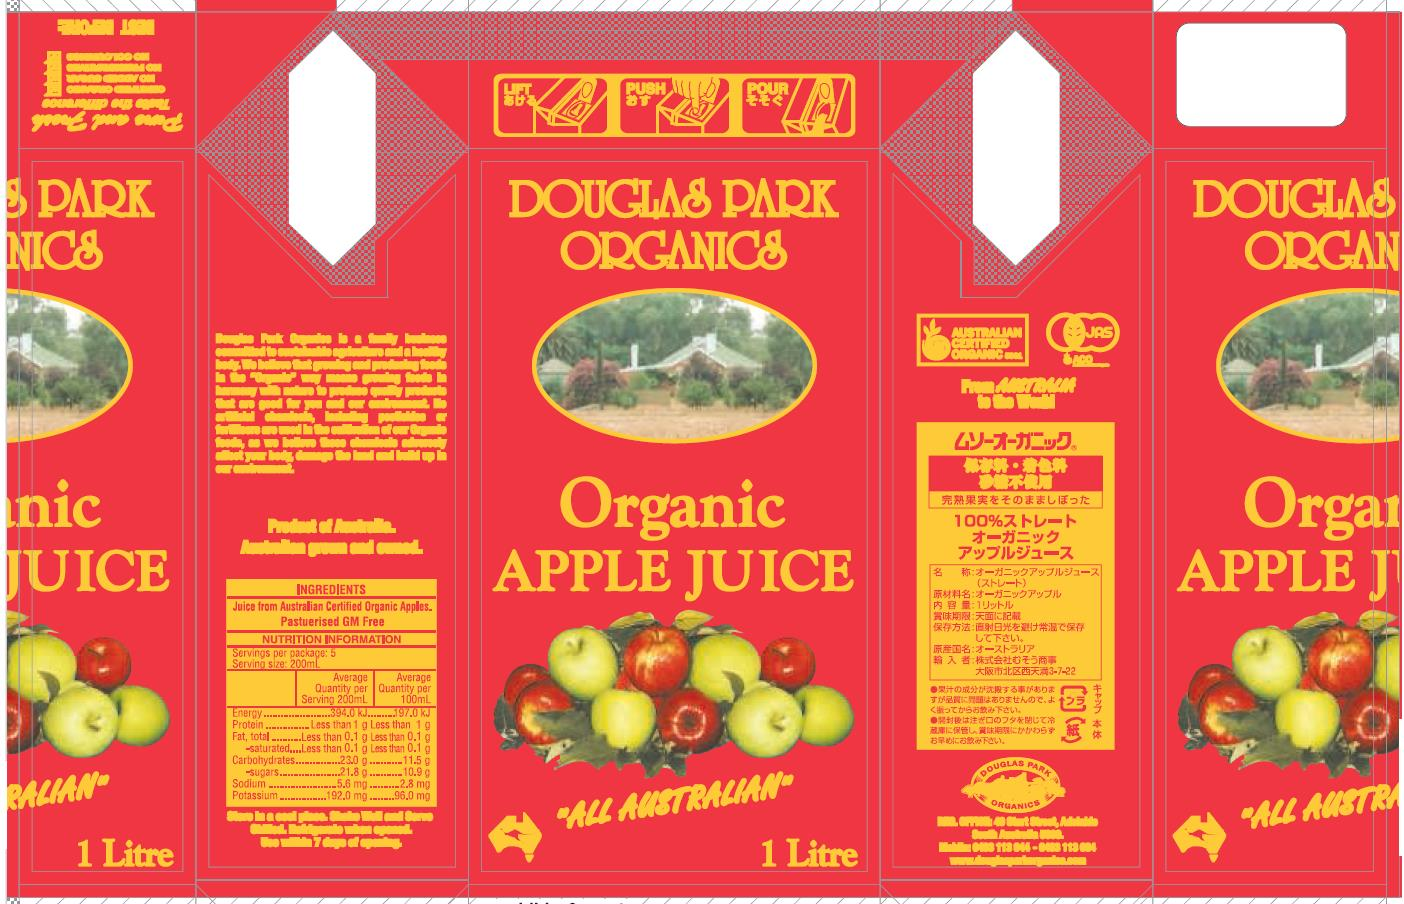 apple-juice-1l